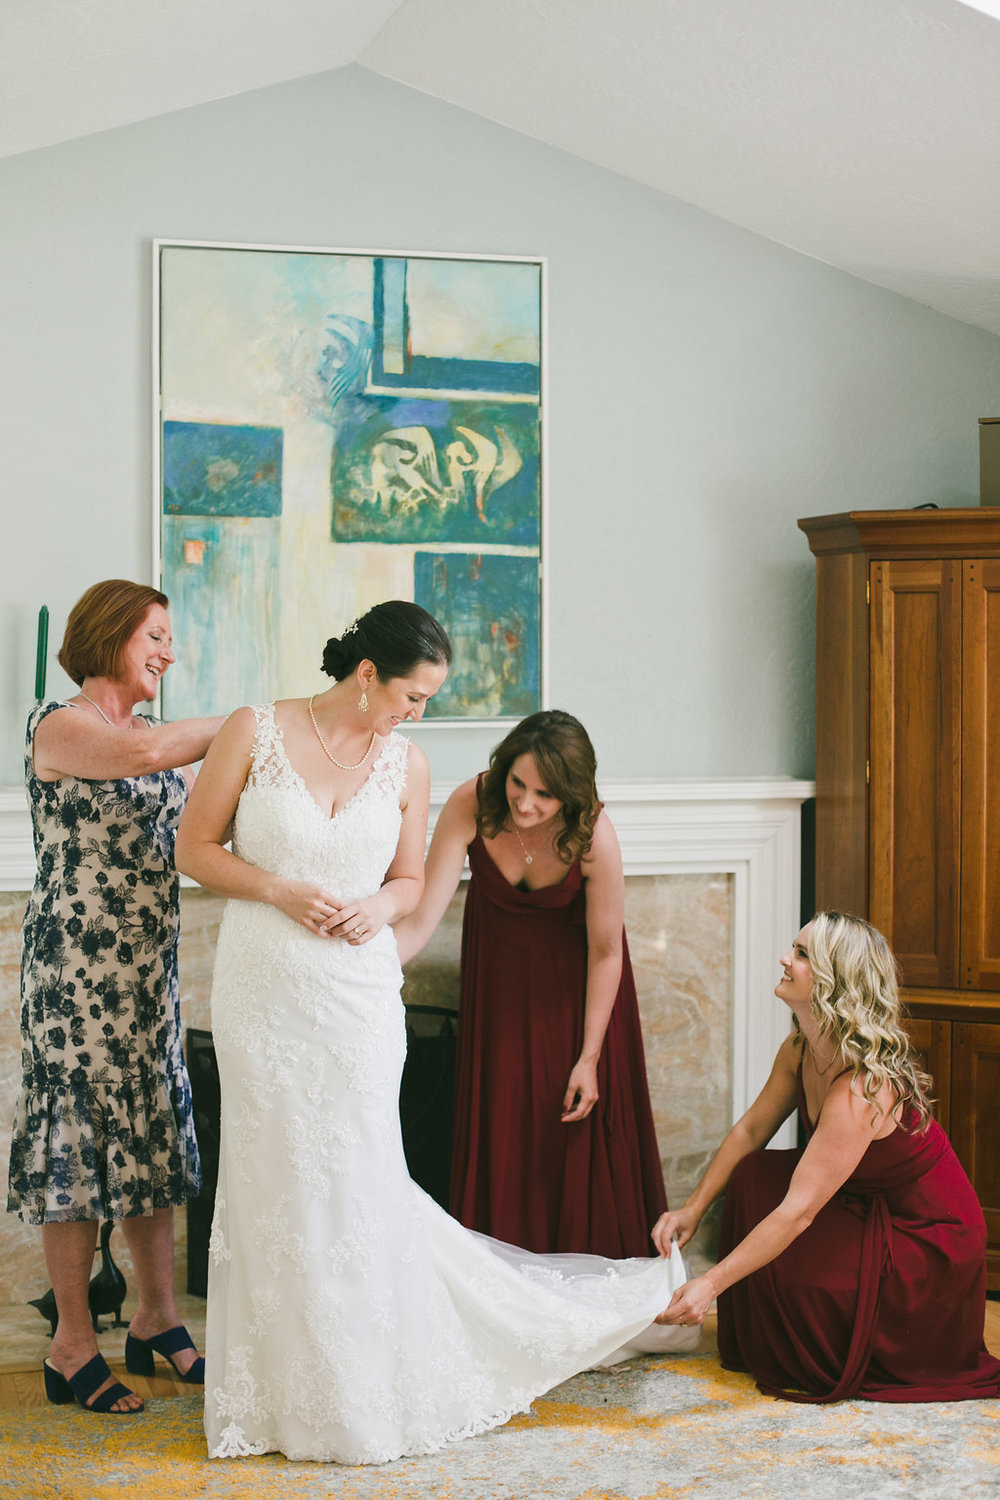 mother and bridesmaids in maroon floor length gowns help bride into her sleeveless lace dress wearing soft natural glowing glamorous makeup by kim baker beauty san jose california makeup artist